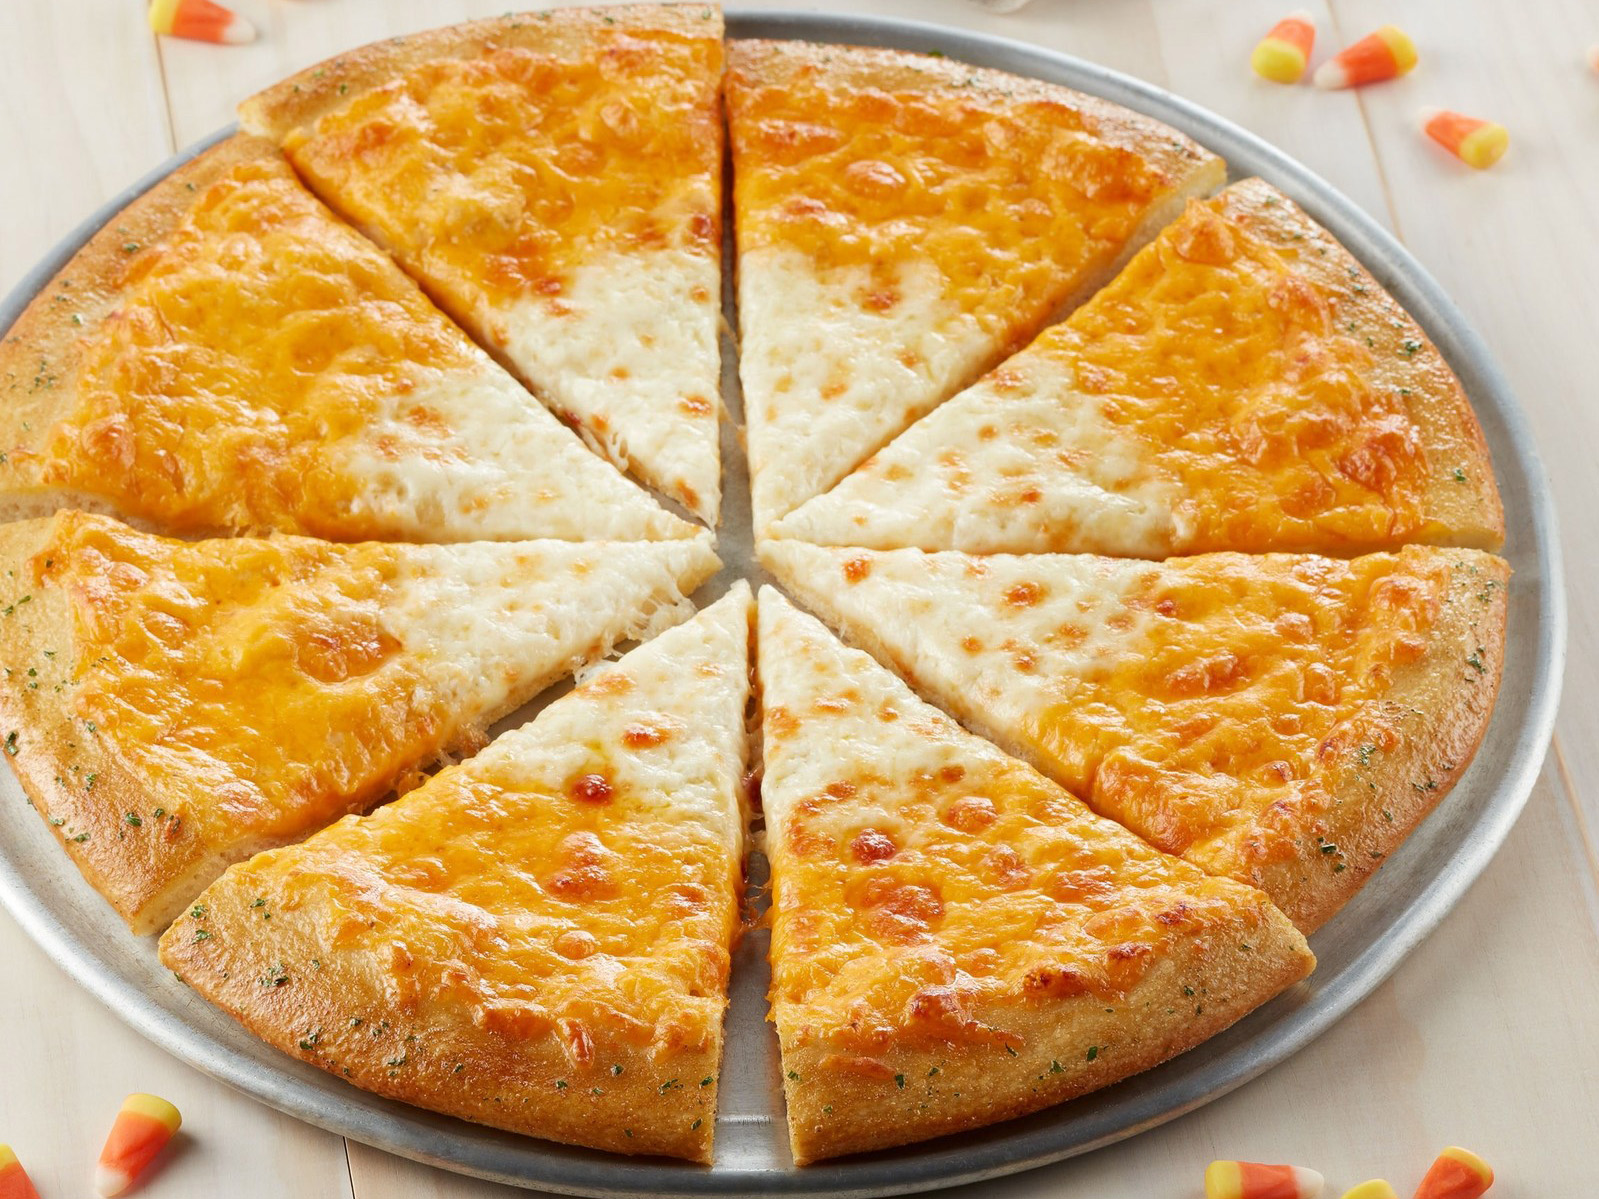 chuck-e-cheeses-candy-corn-pizza-FT-BLOG1017.jpeg